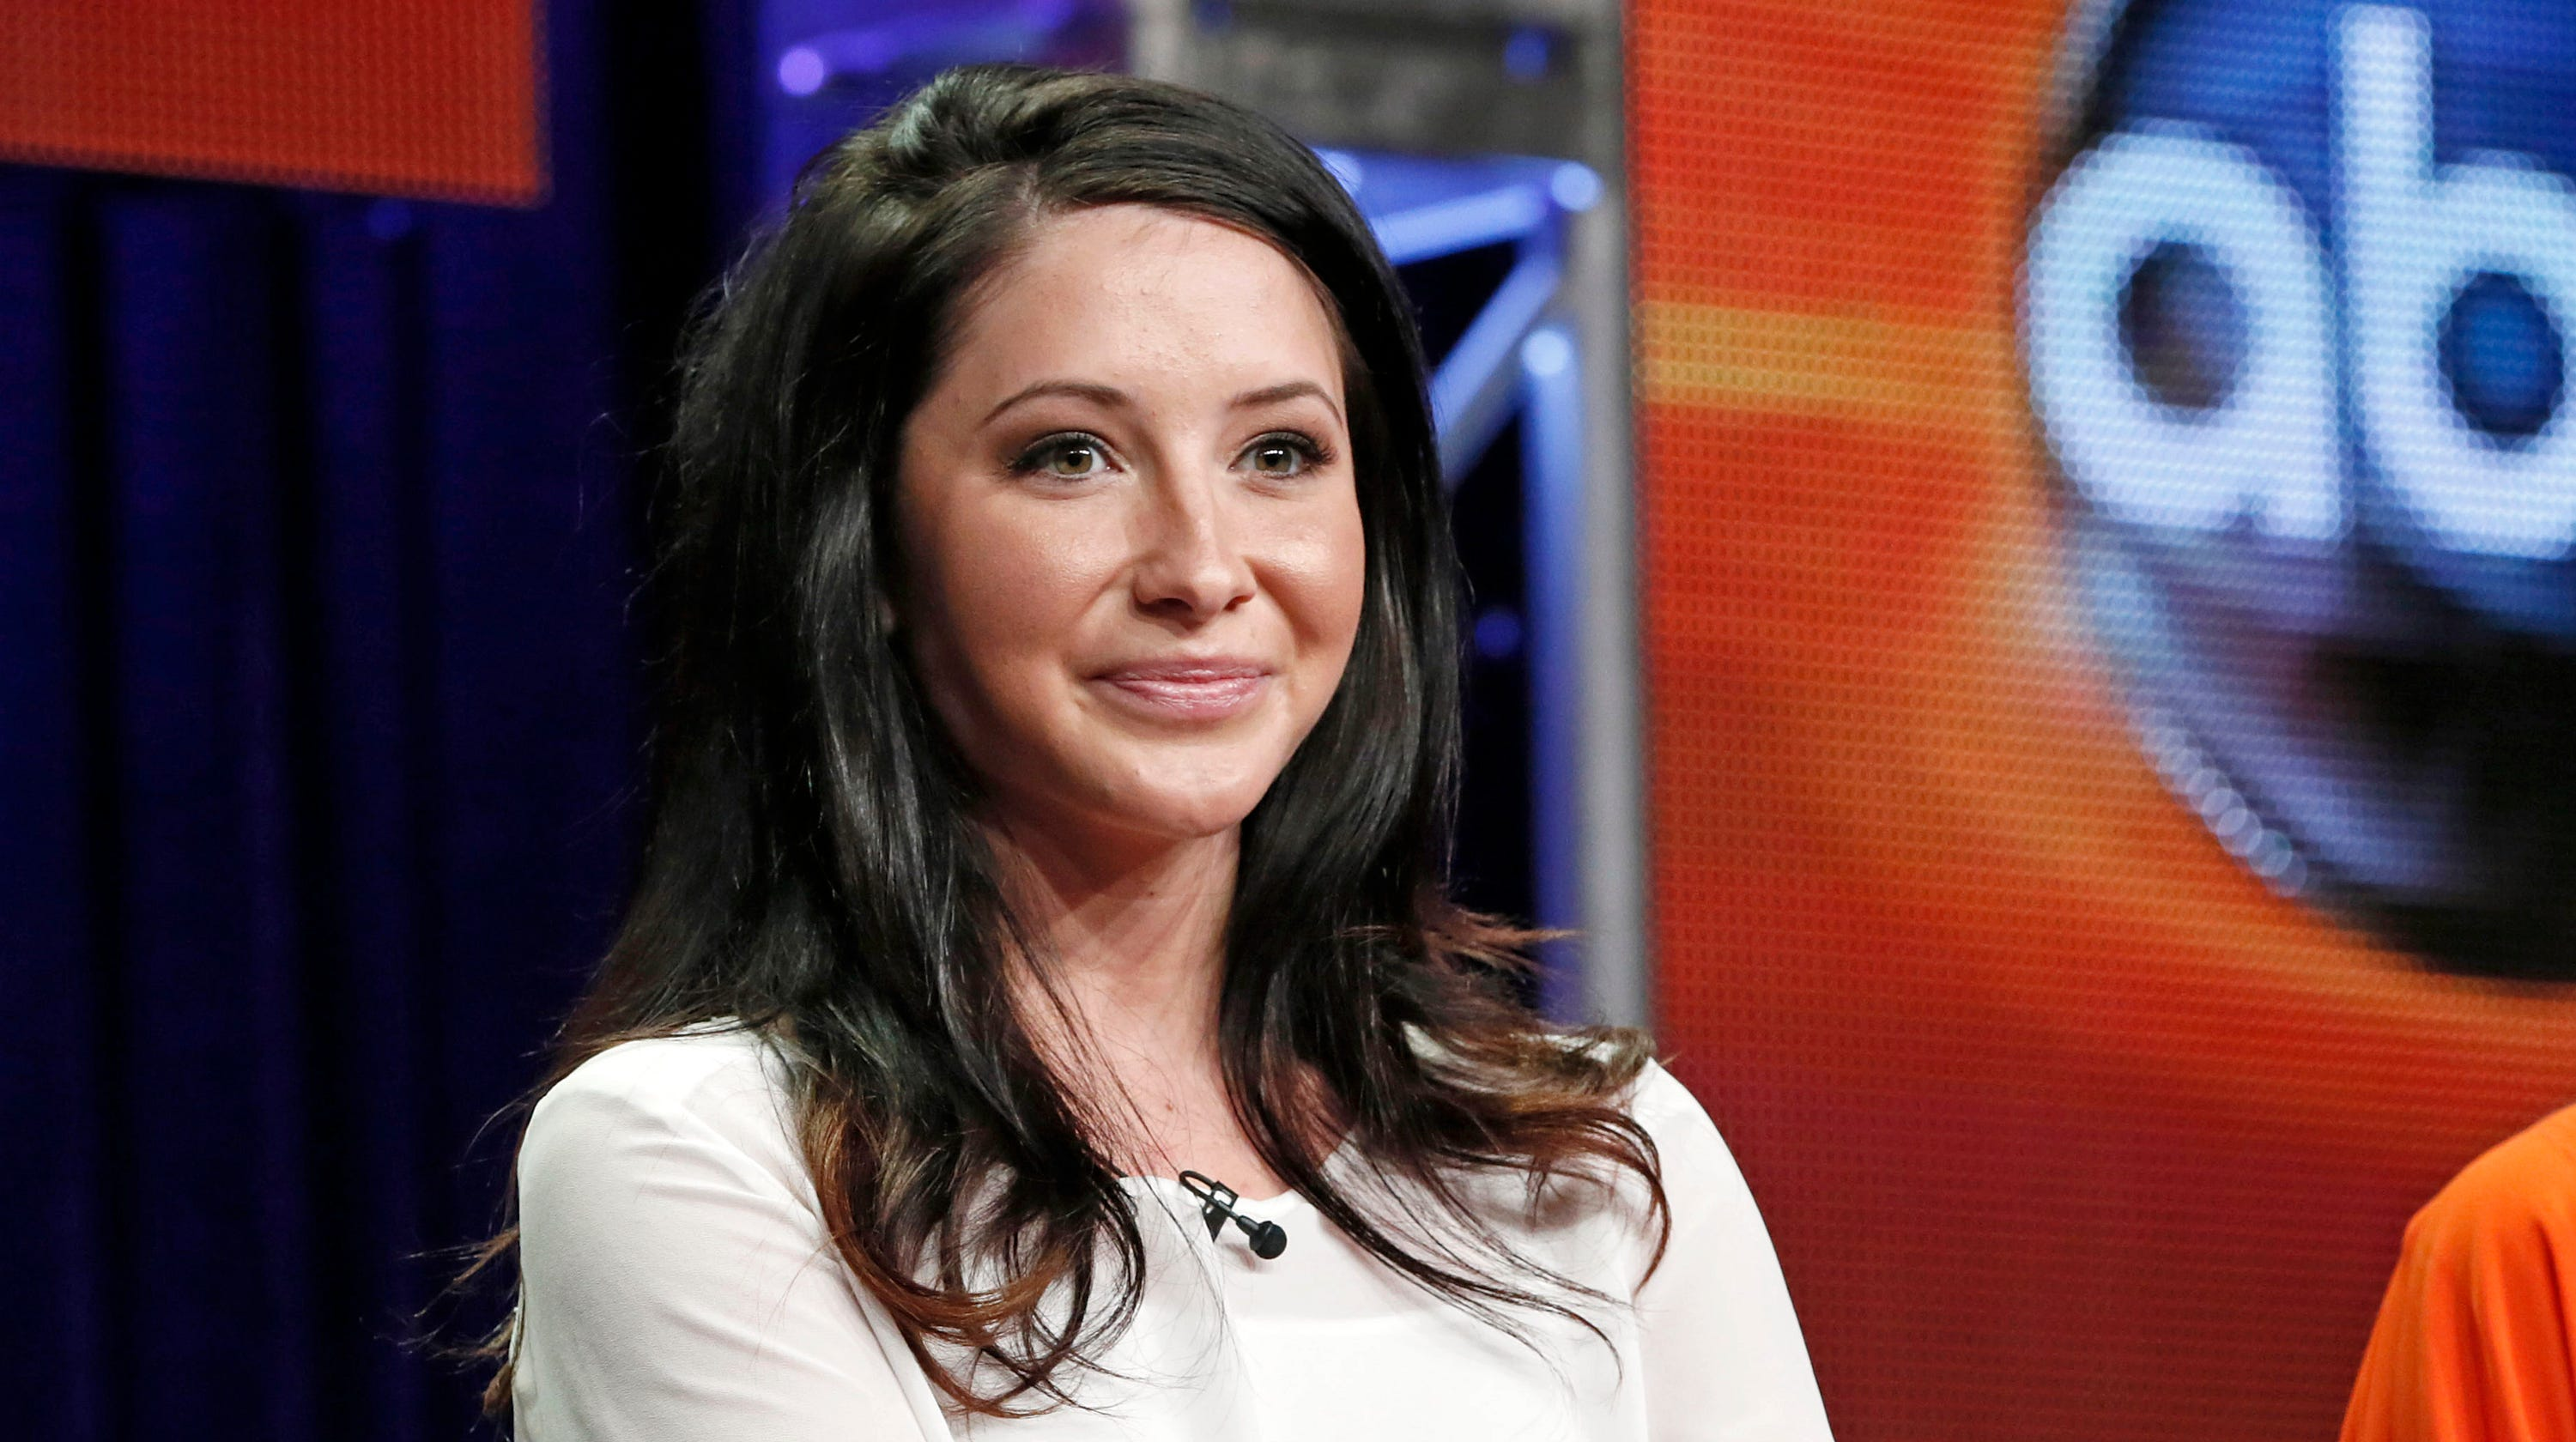 Bristol Palin joins MTV's 'Teen Mom OG,' is 'excited' to